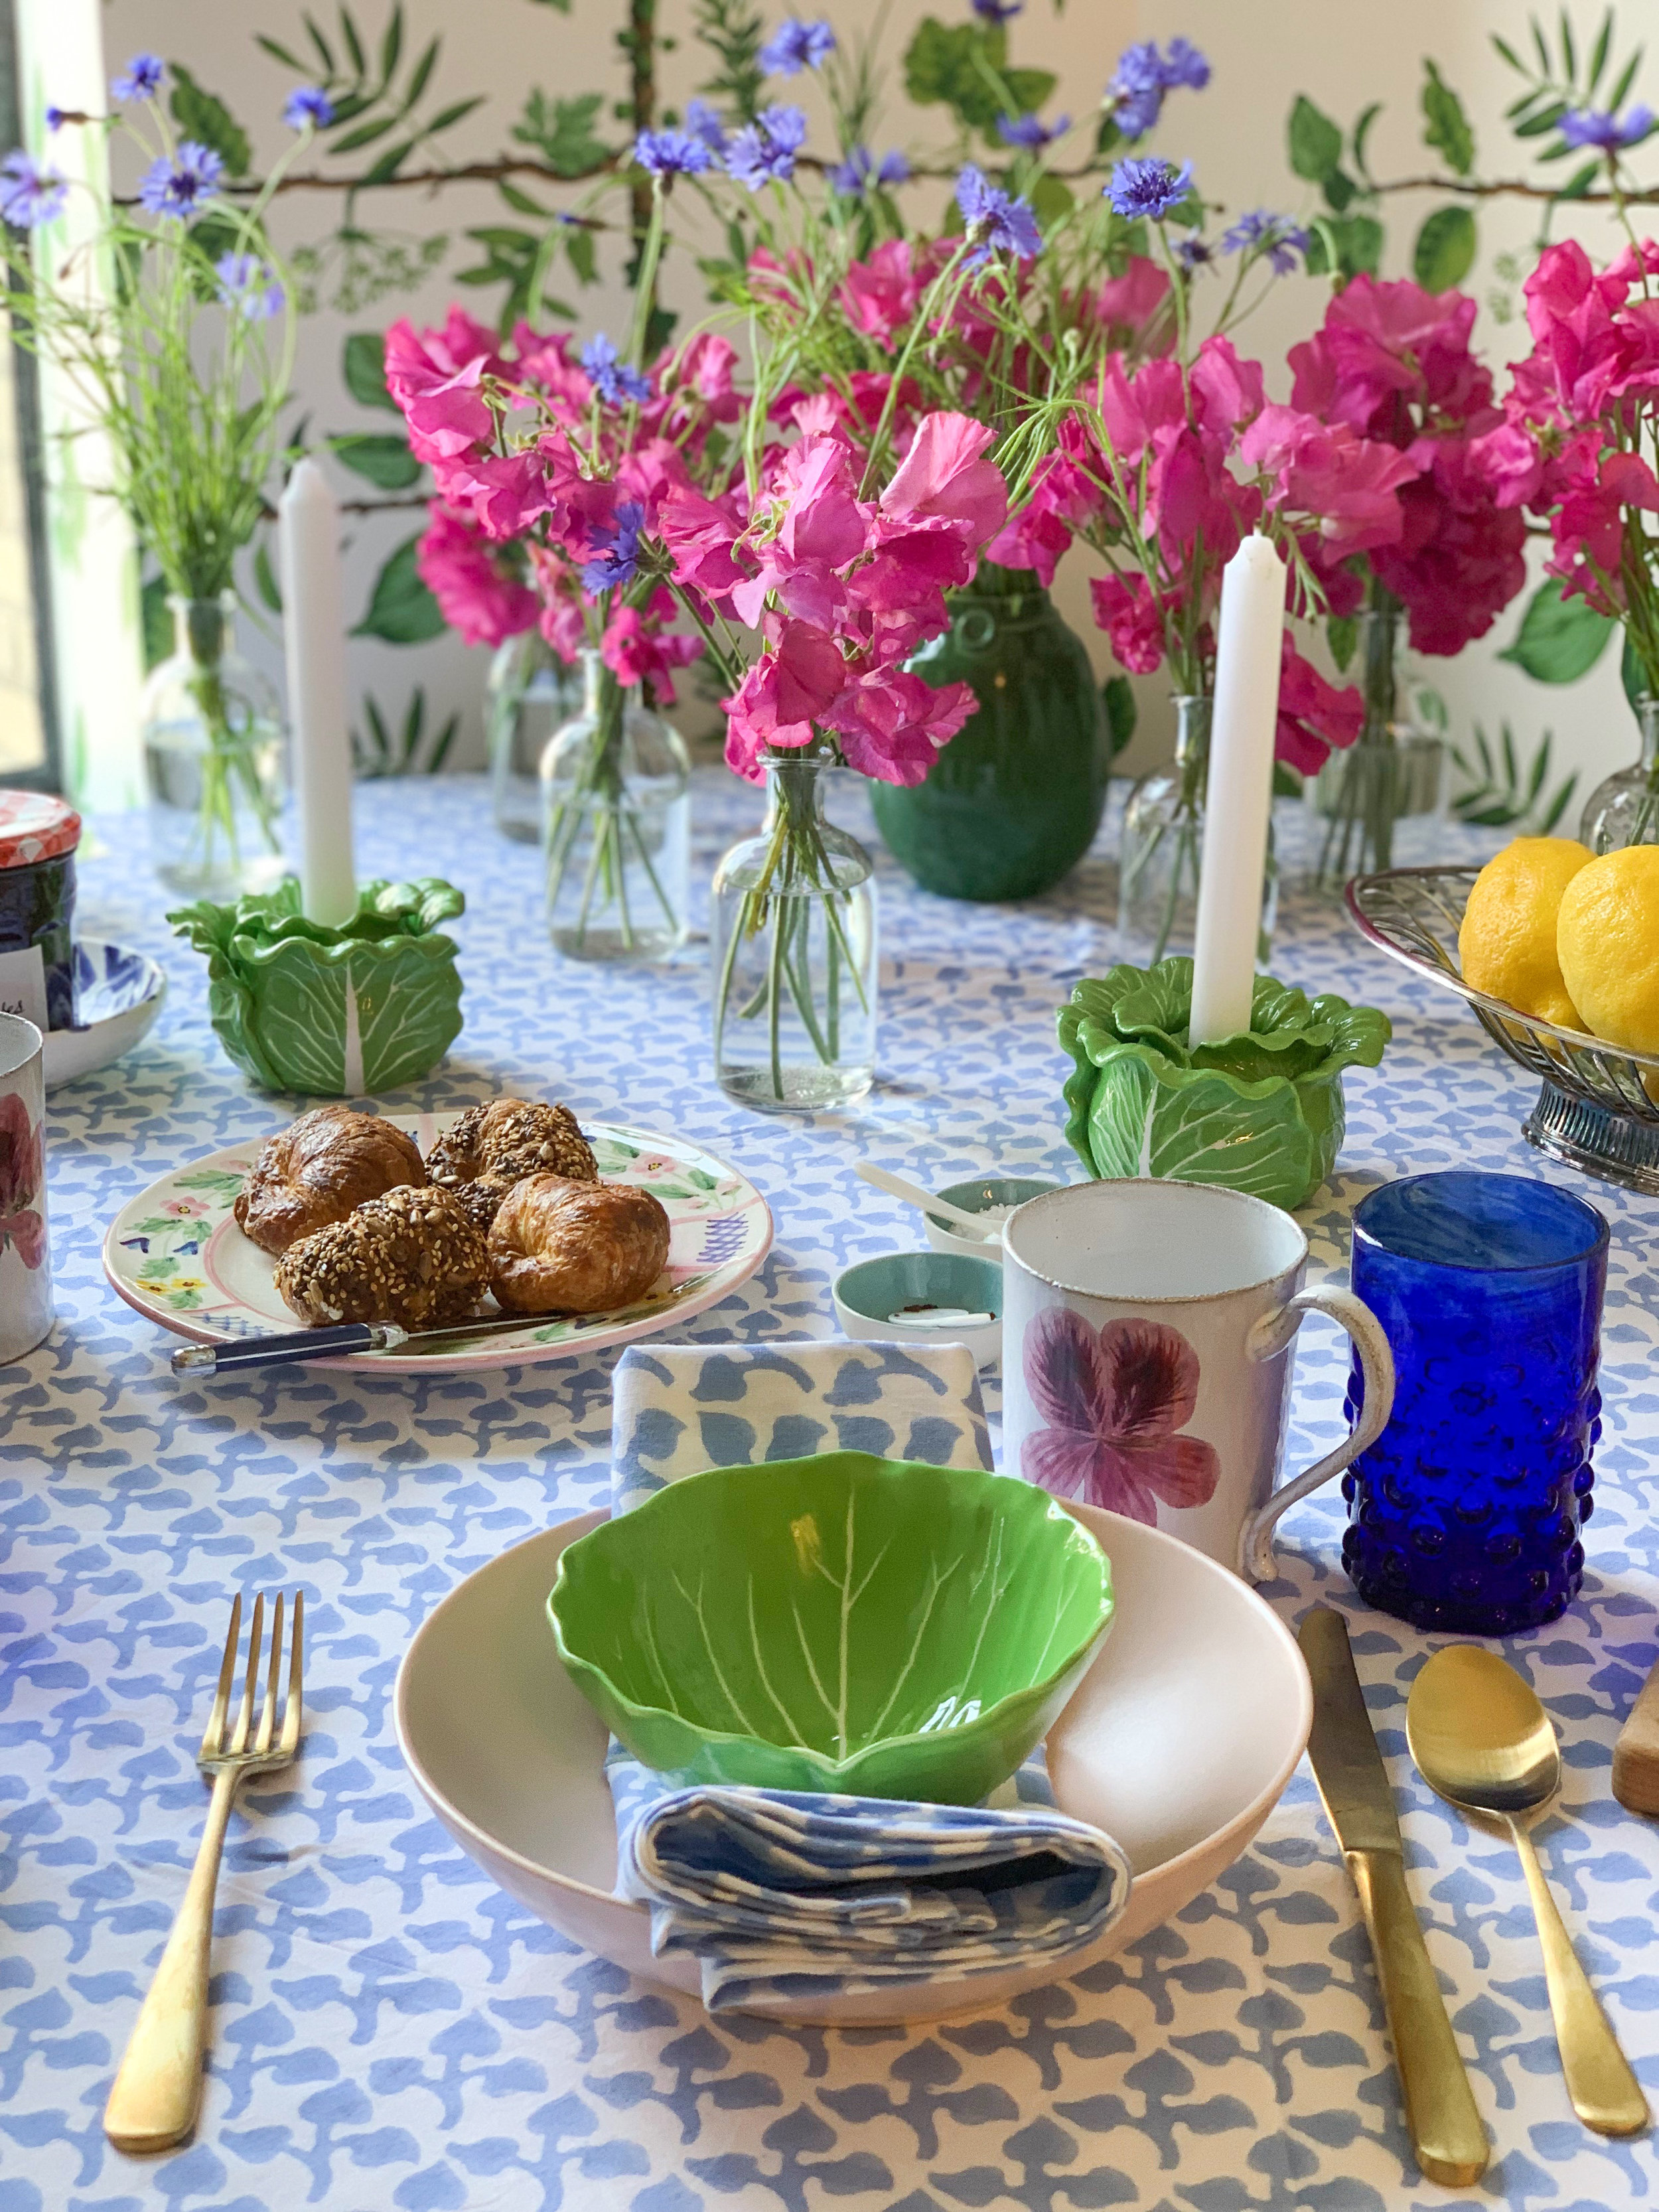 Simply Elegant Blog - Breakfast Tablescape with India Amory 4.jpg